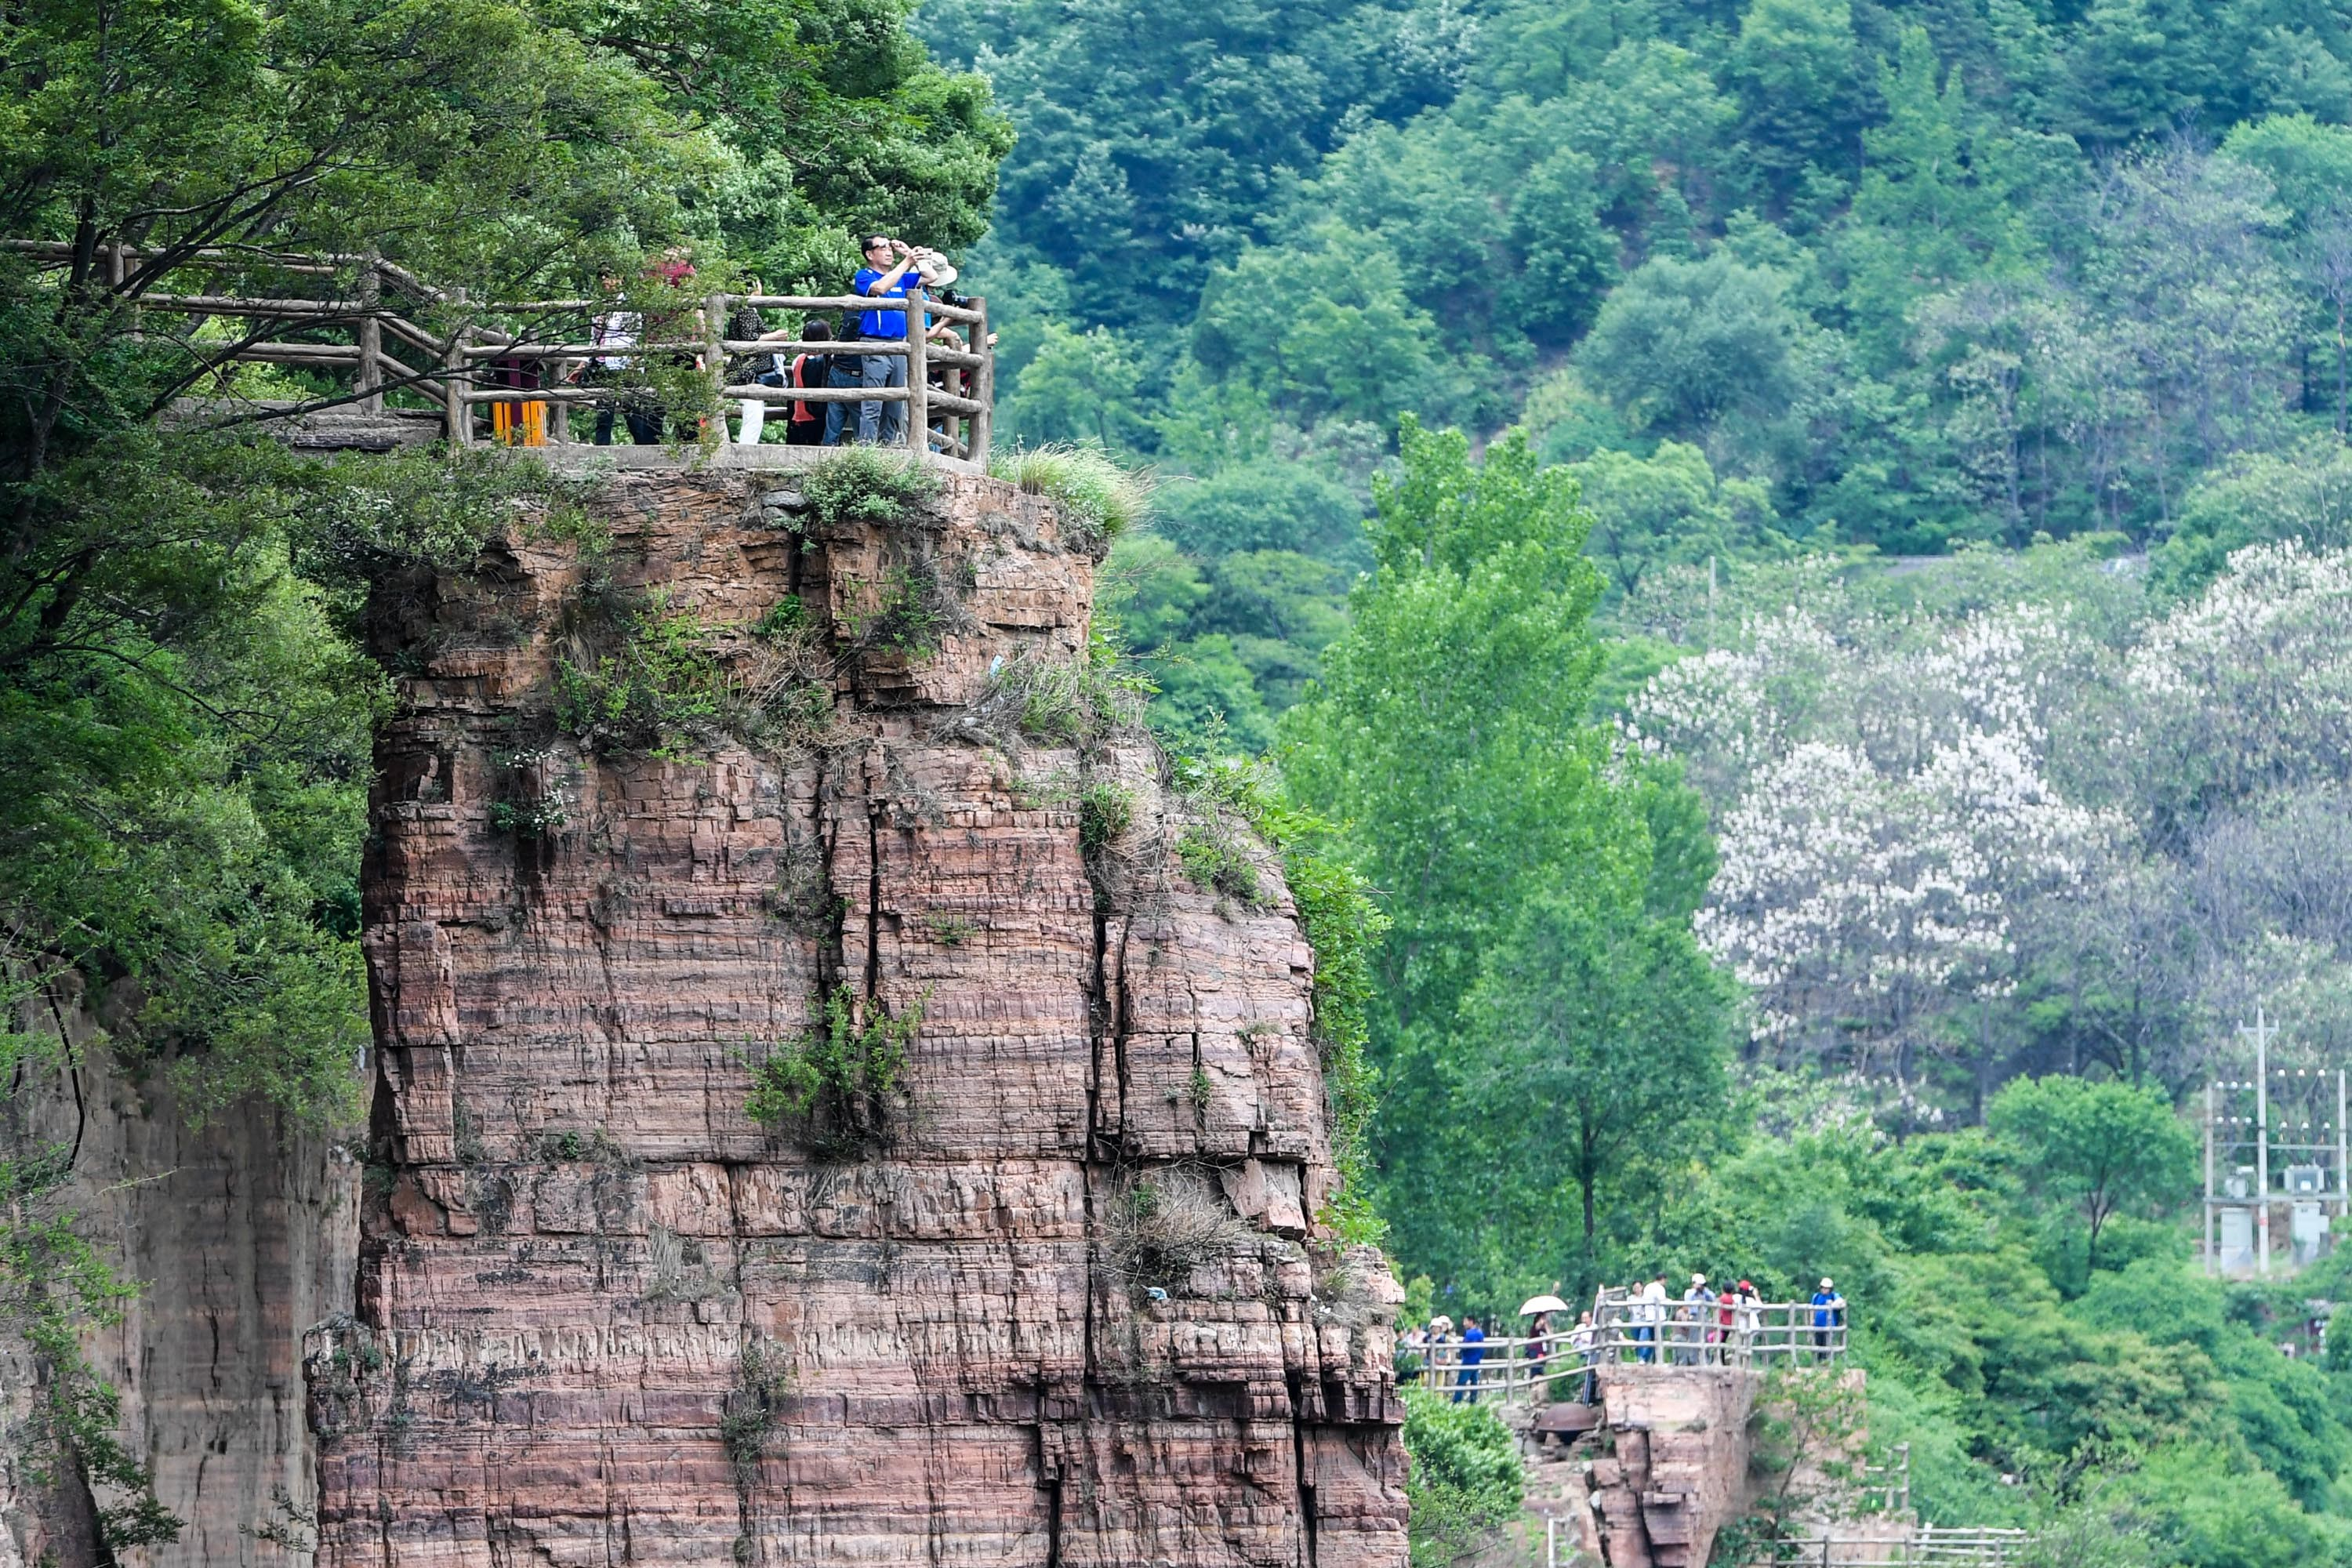 Tourists enjoy a grand view of Hongyan Canyon from a sightseeing stand in Guoliang Village.